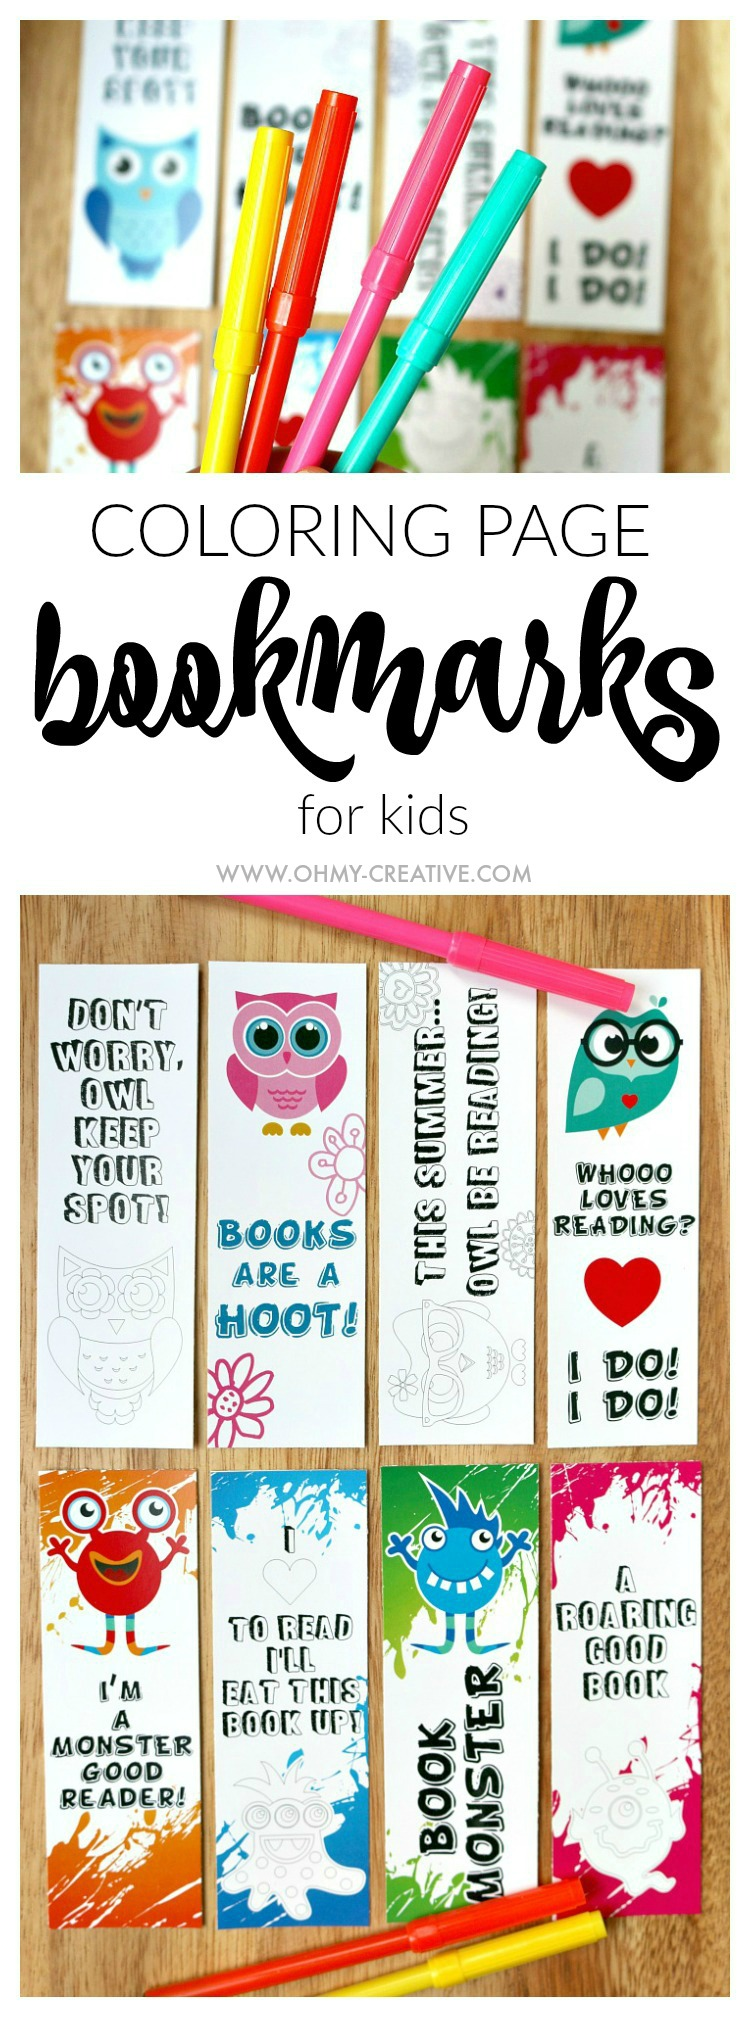 Use these adorable free printable bookmark coloring pages to get the kids interested in reading.